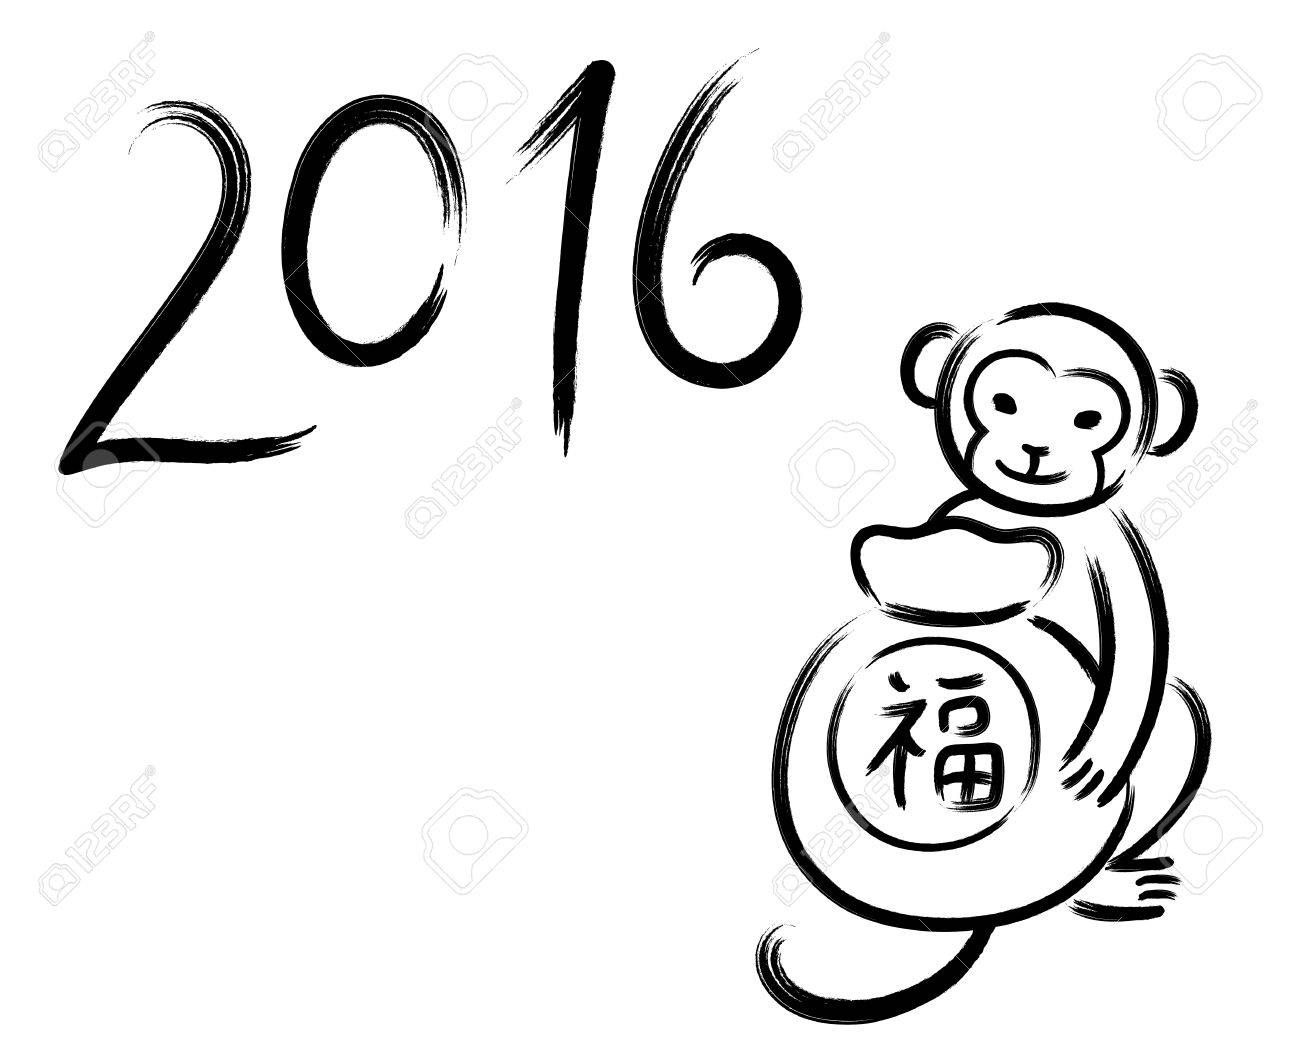 Chinese New Year 2016 Zodiac Symbol Monkey With Bag Of Gifts